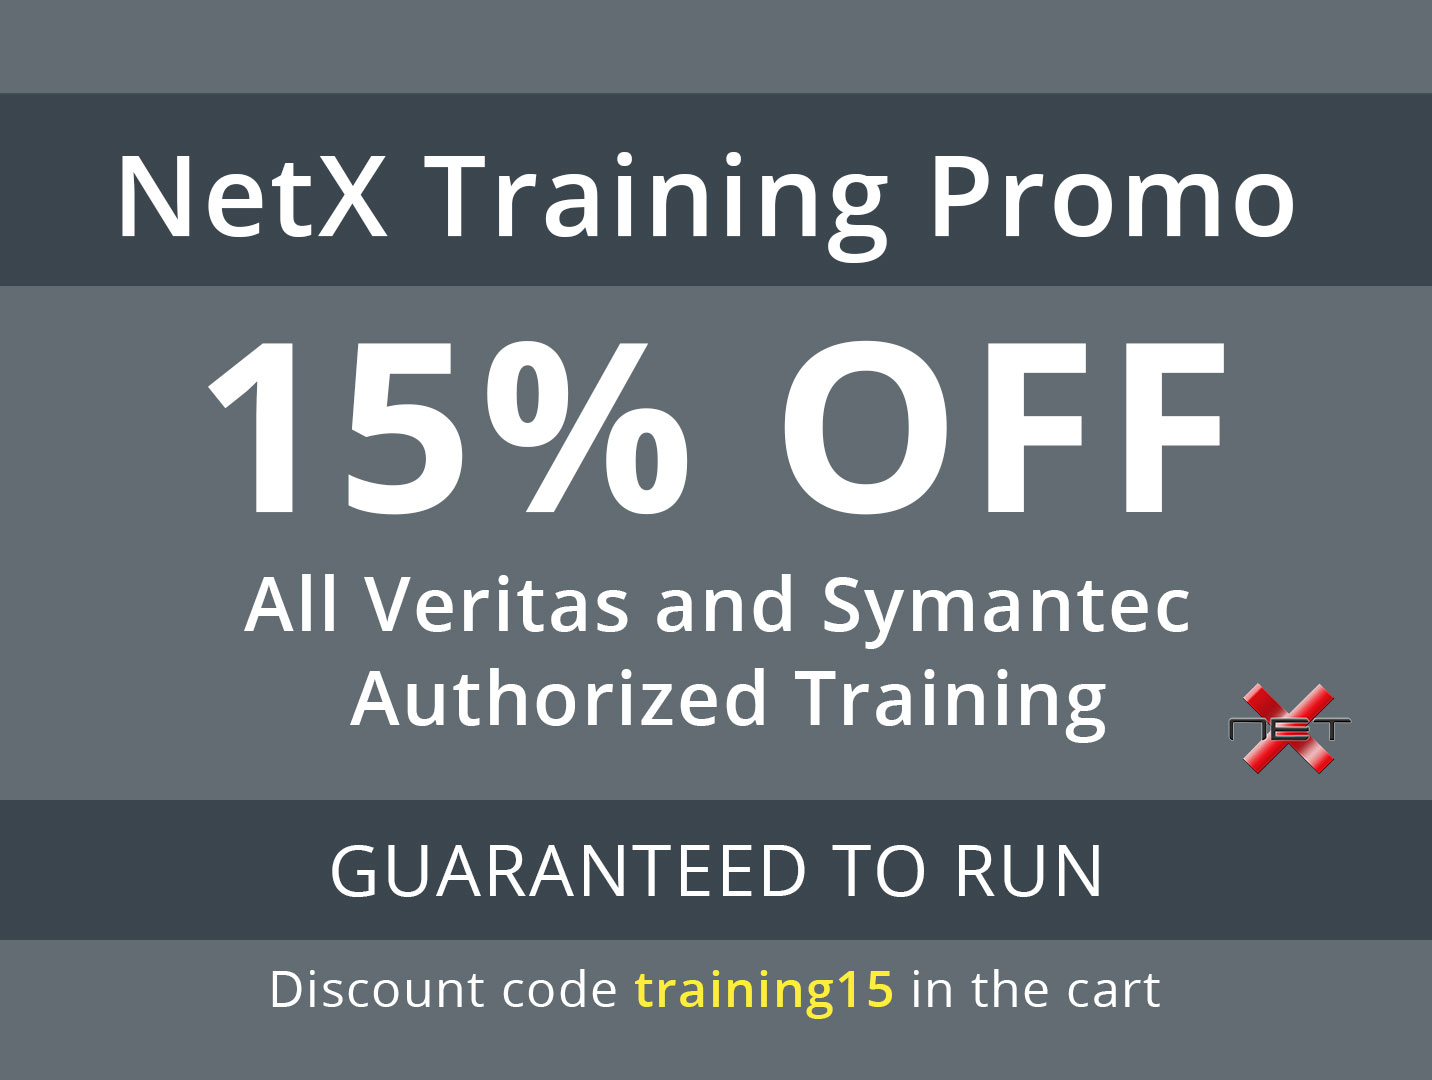 NetX 15% Discount Veritas and Symantec Authorized Training Promotion